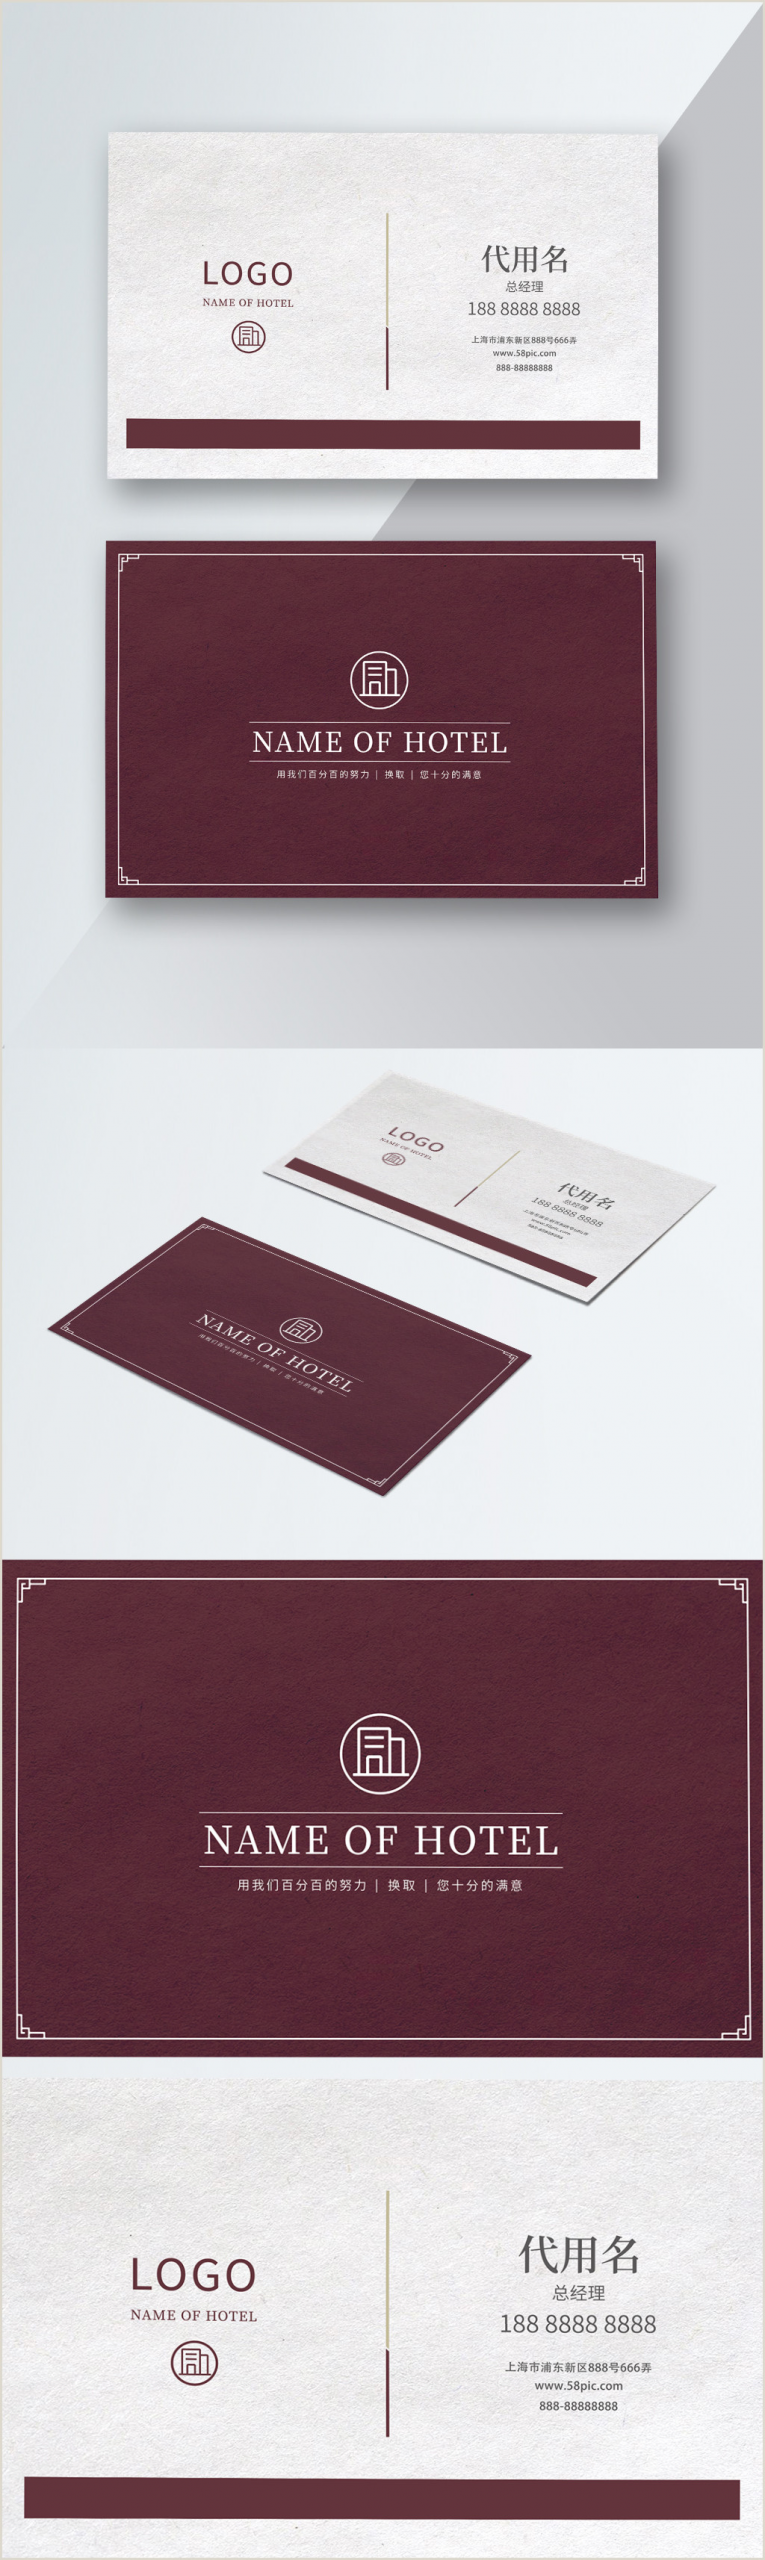 Best Business Cards For.hotels High End Simple Business Hotel Hotel Business Card Template